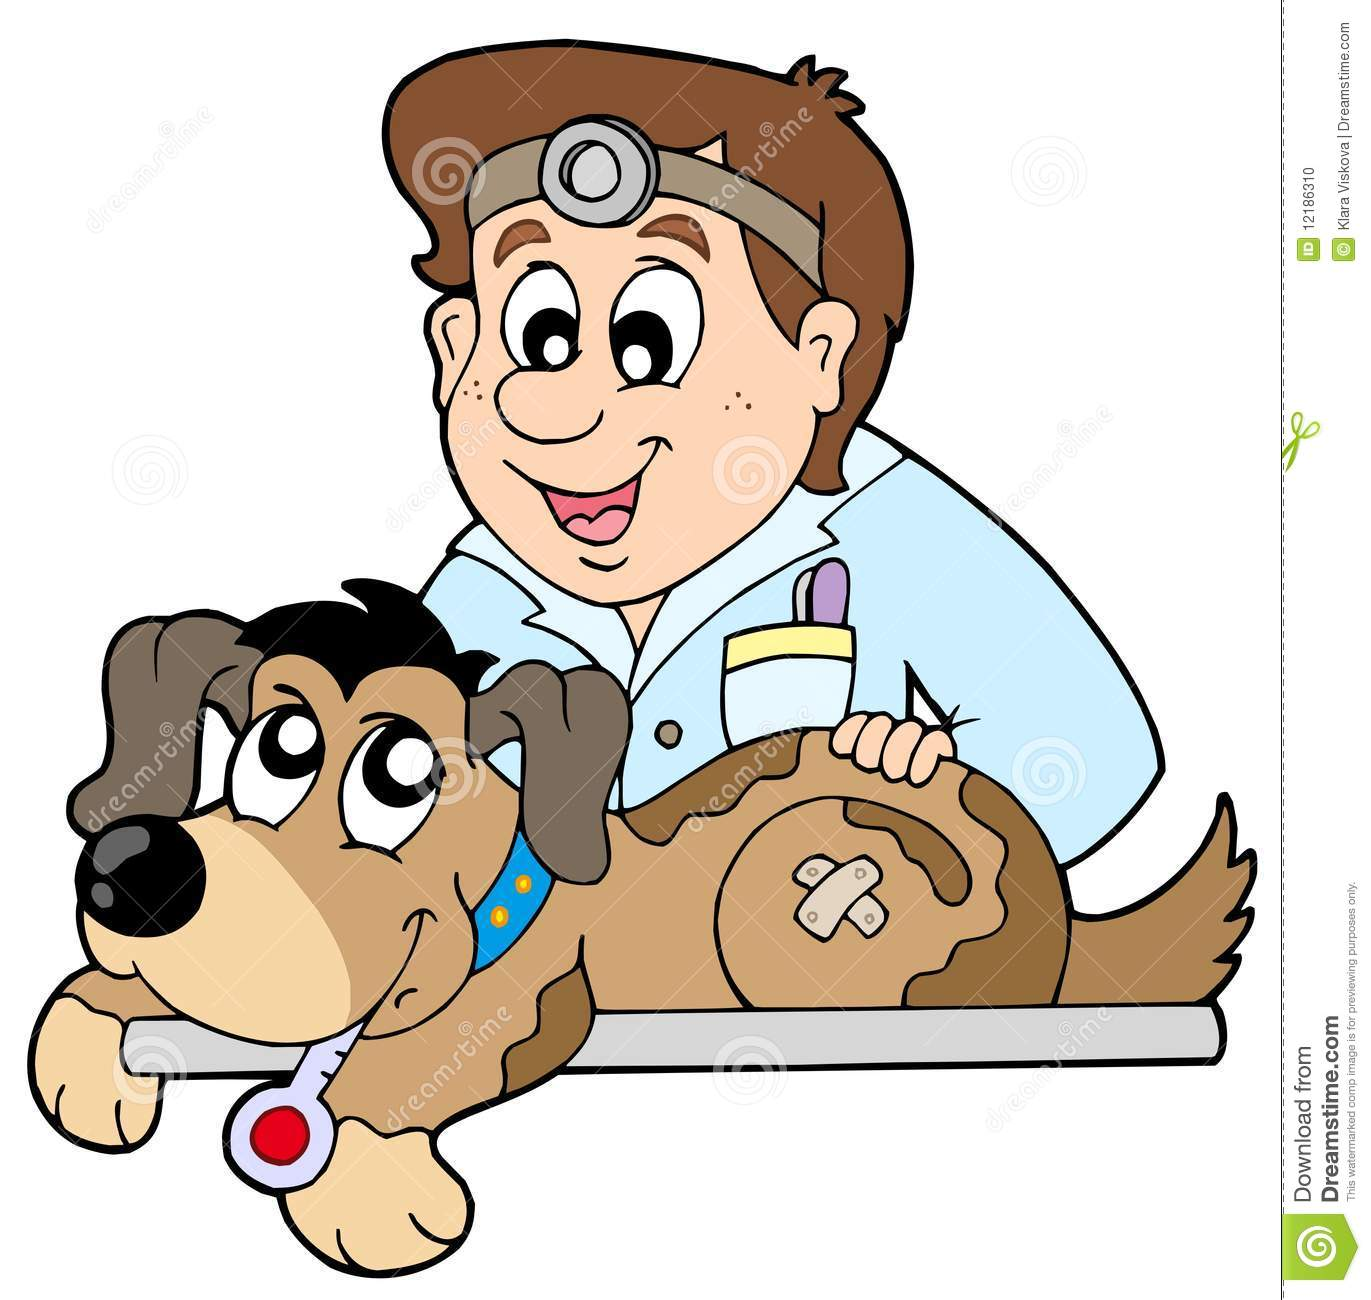 vet clipart png - Clipground